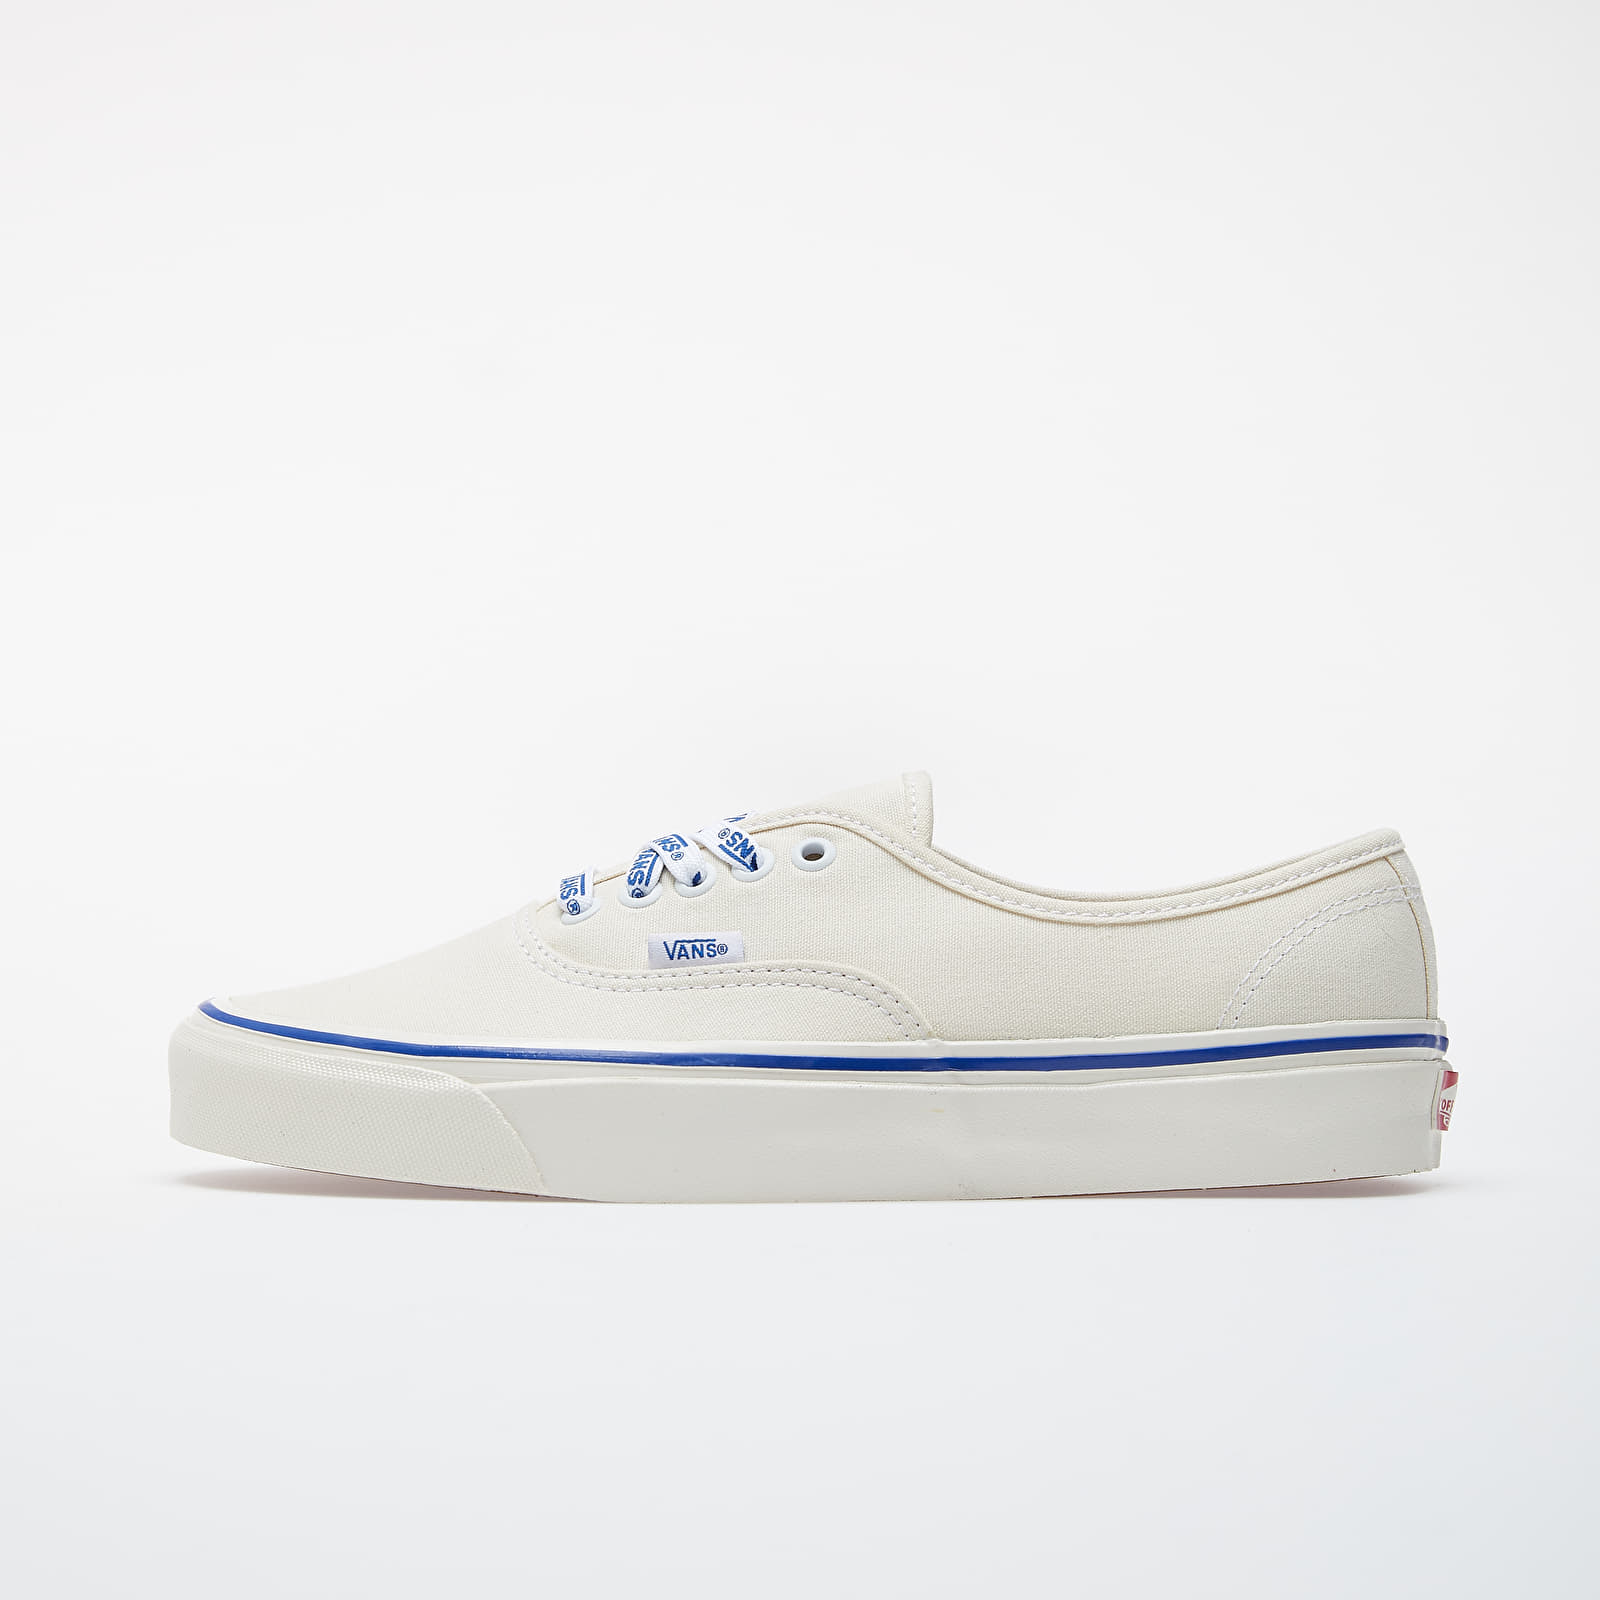 Férfi cipők Vans Authentic 44 DX Og White